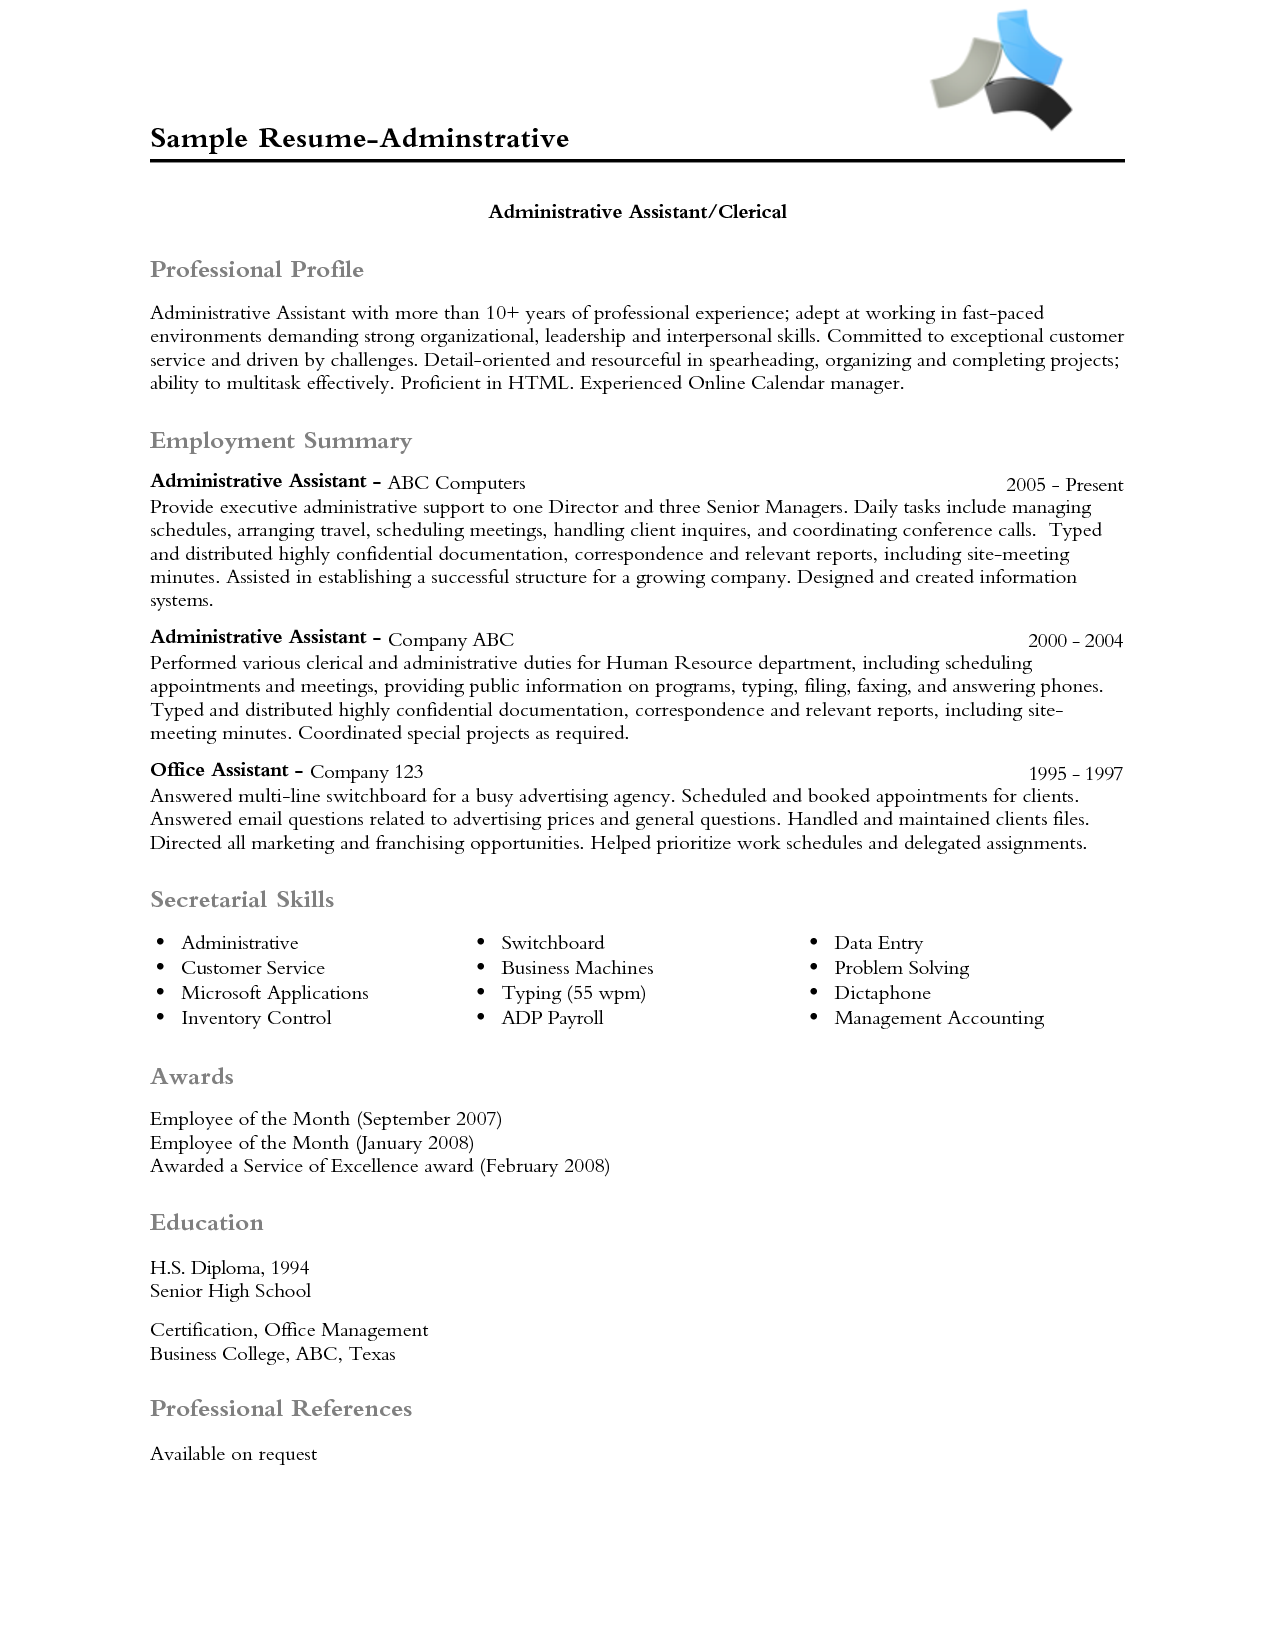 Resume Profile Examples Stockroom Manager Resume Samples  Httpwwwresumecareer